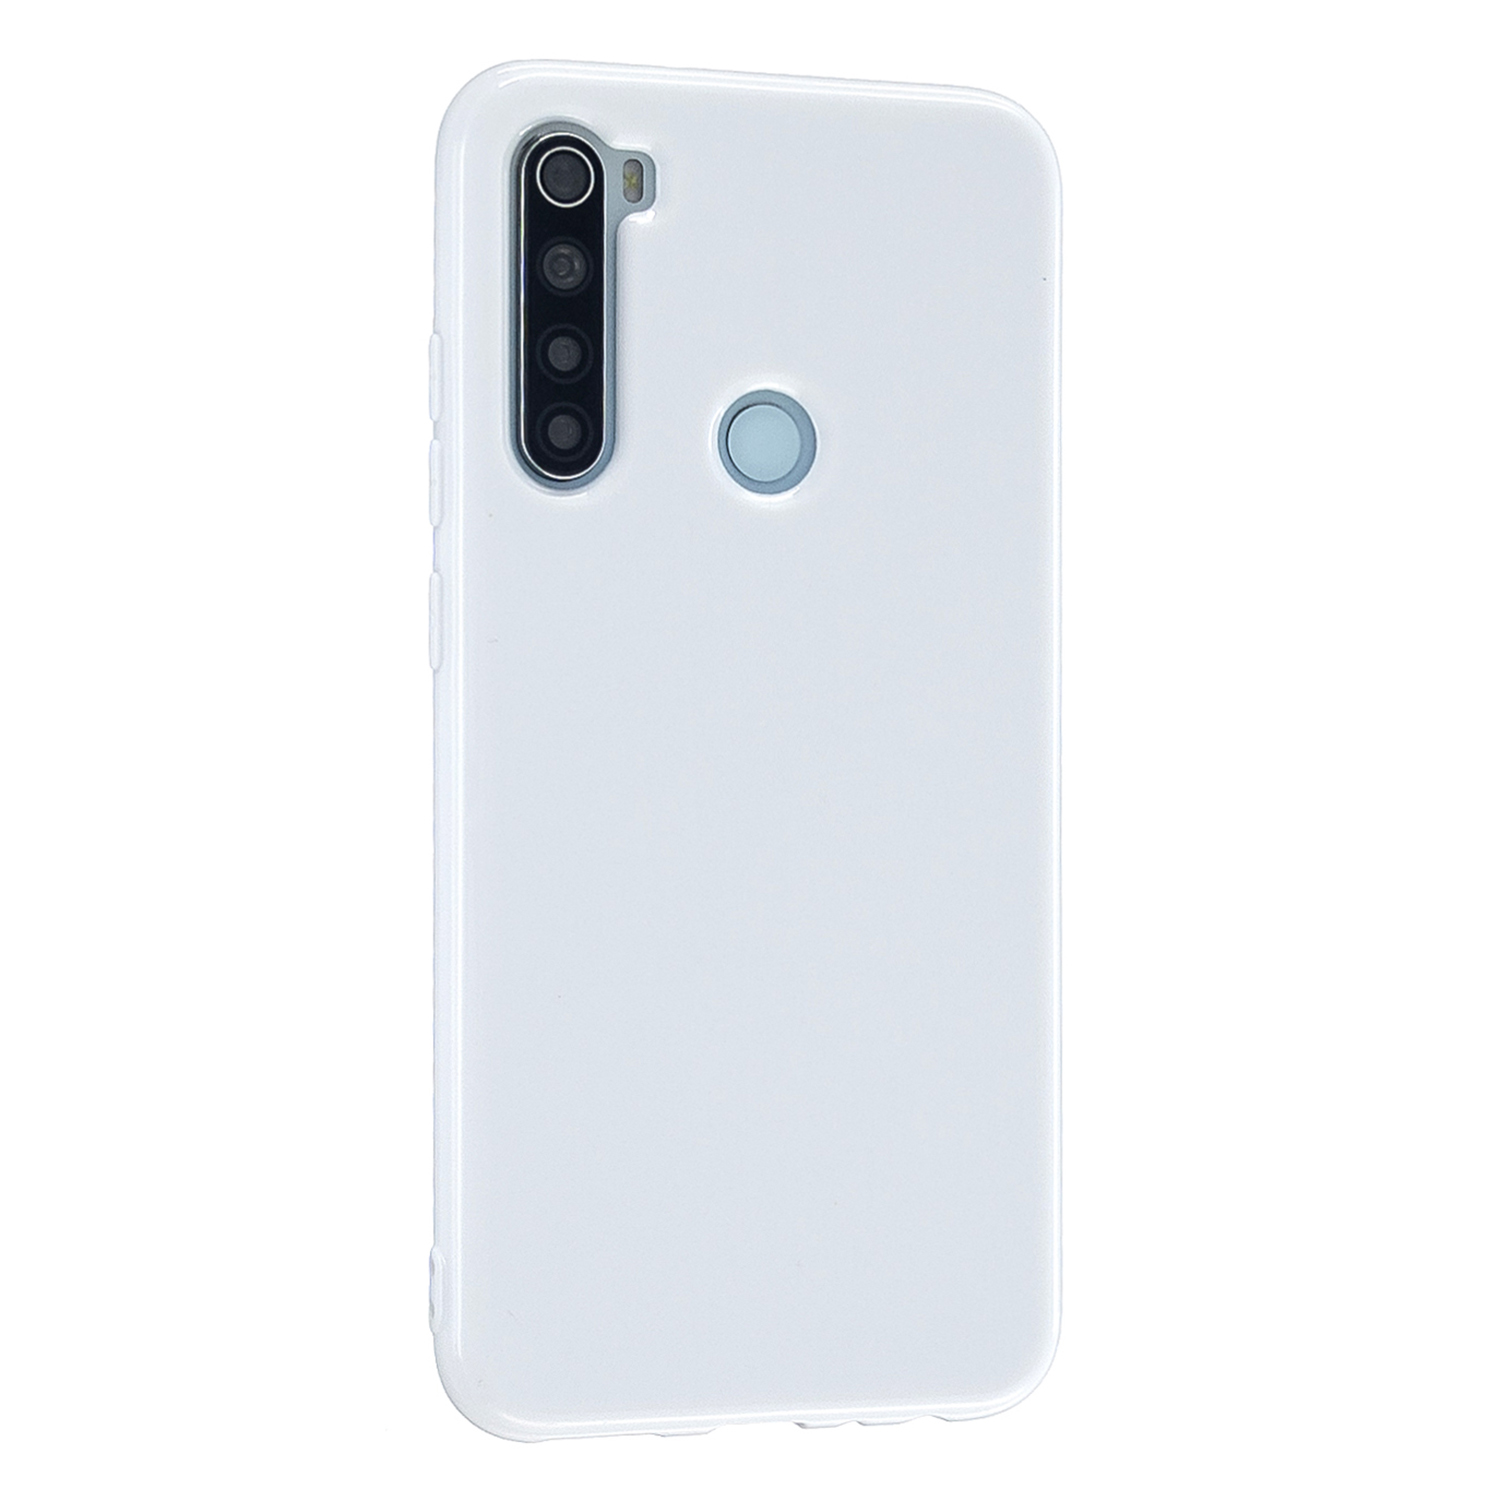 For Redmi Note 8/8 Pro Cellphone Cover 2.0mm Thickened TPU Case Camera Protector Anti-Scratch Soft Phone Shell White